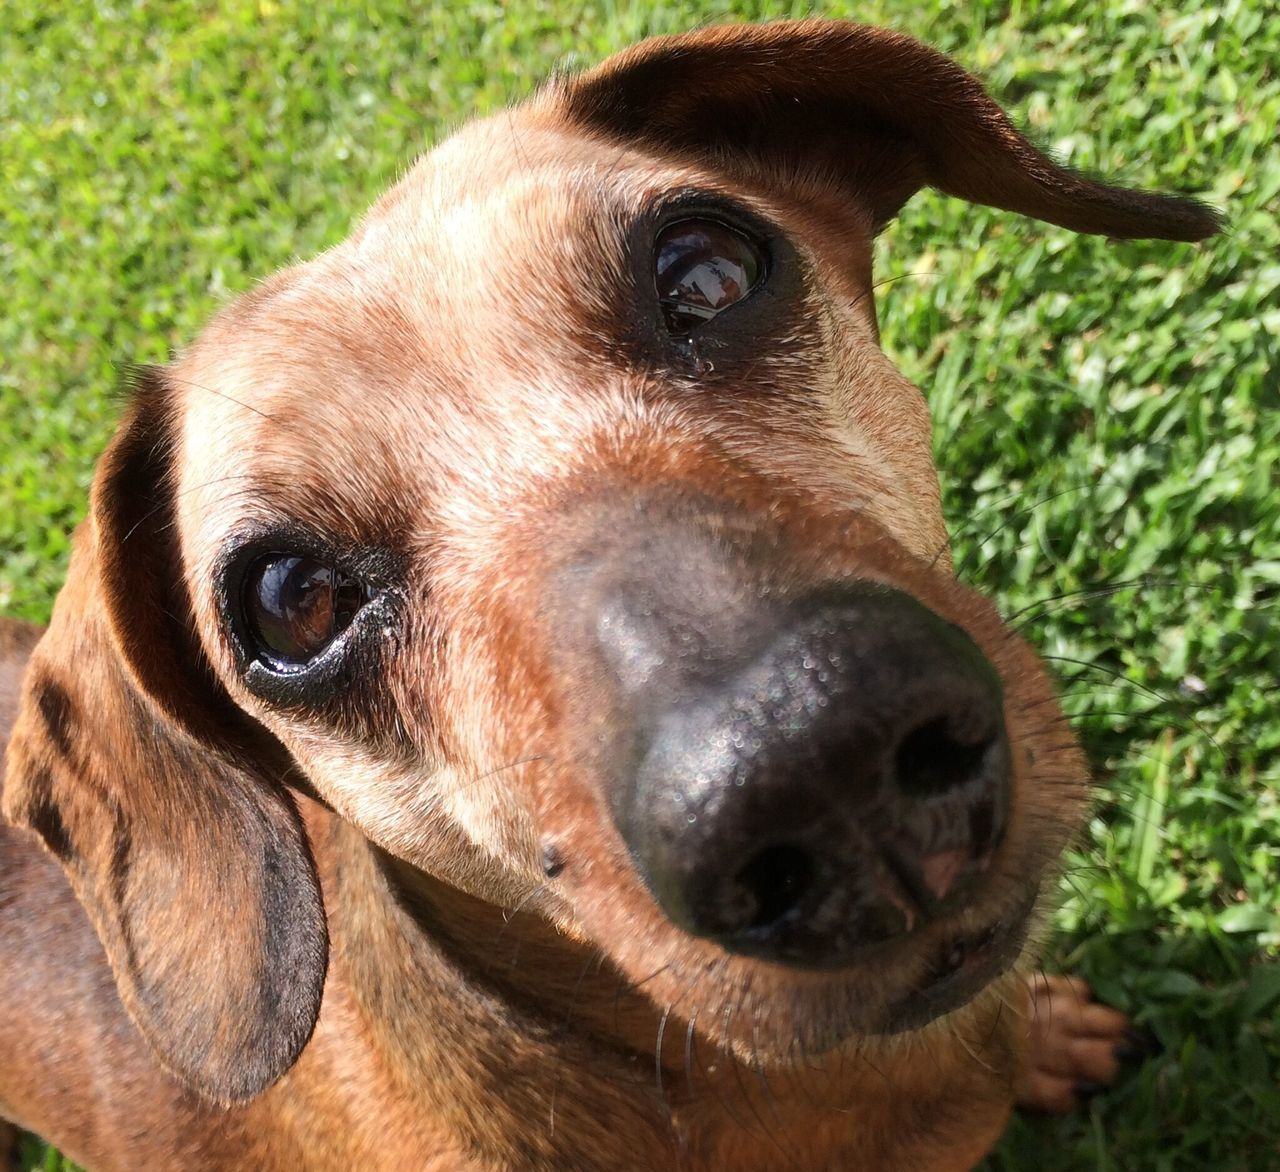 Hey you! Cute Dog  Dog Looking At Camera Close-up Portrait Animal Head  Grass Dog Portrait Dogoftheday EyeEm Animal Lover Dogs Of EyeEm Old Dog Dog❤ The Week On Eyem The Week Of Eyeem Week On Eyeem Dachshunds Dachshund Sausagedog Old Dogs Rule Cute Dog  Modeling Lovely Dog Dogs Dog Love